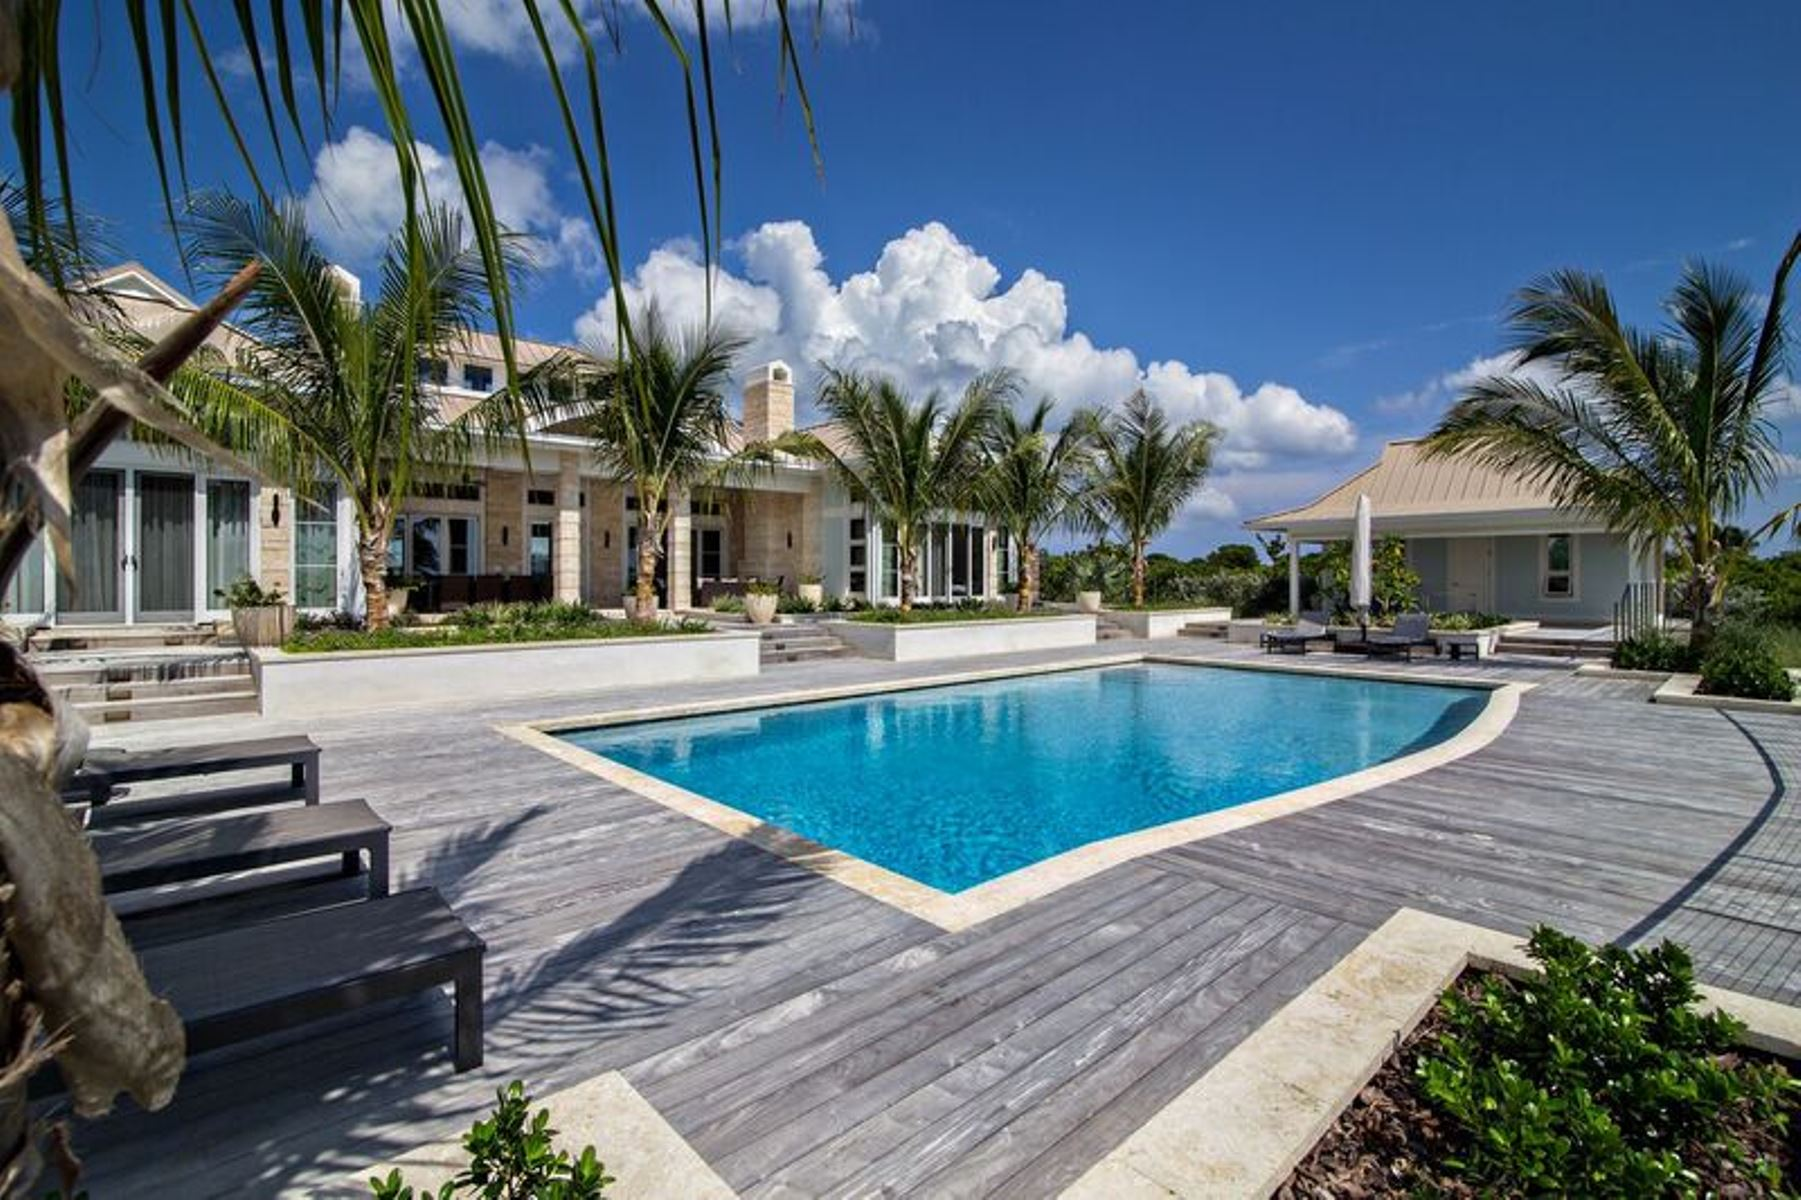 Nhà ở một gia đình vì Bán tại Enchanting Home Located At The Abaco Club on Winding Bay (MLS 27799) Abaco, Bahamas